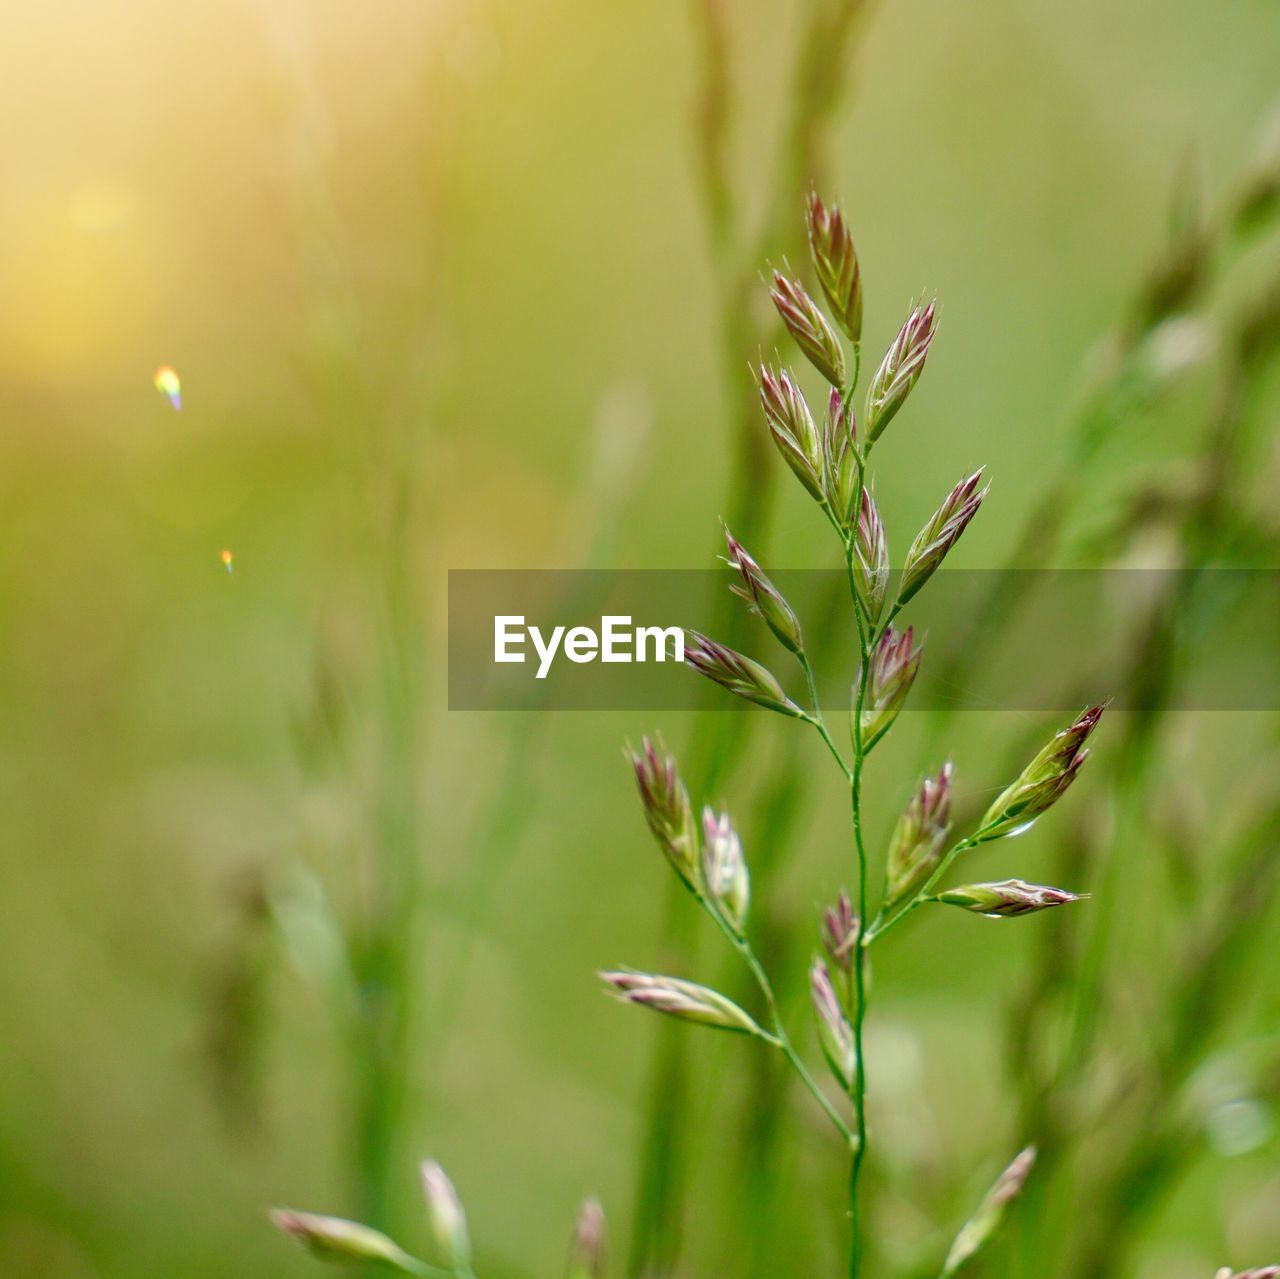 growth, plant, beauty in nature, focus on foreground, close-up, nature, no people, tranquility, green color, selective focus, day, outdoors, vulnerability, freshness, field, fragility, plant part, sunlight, land, plant stem